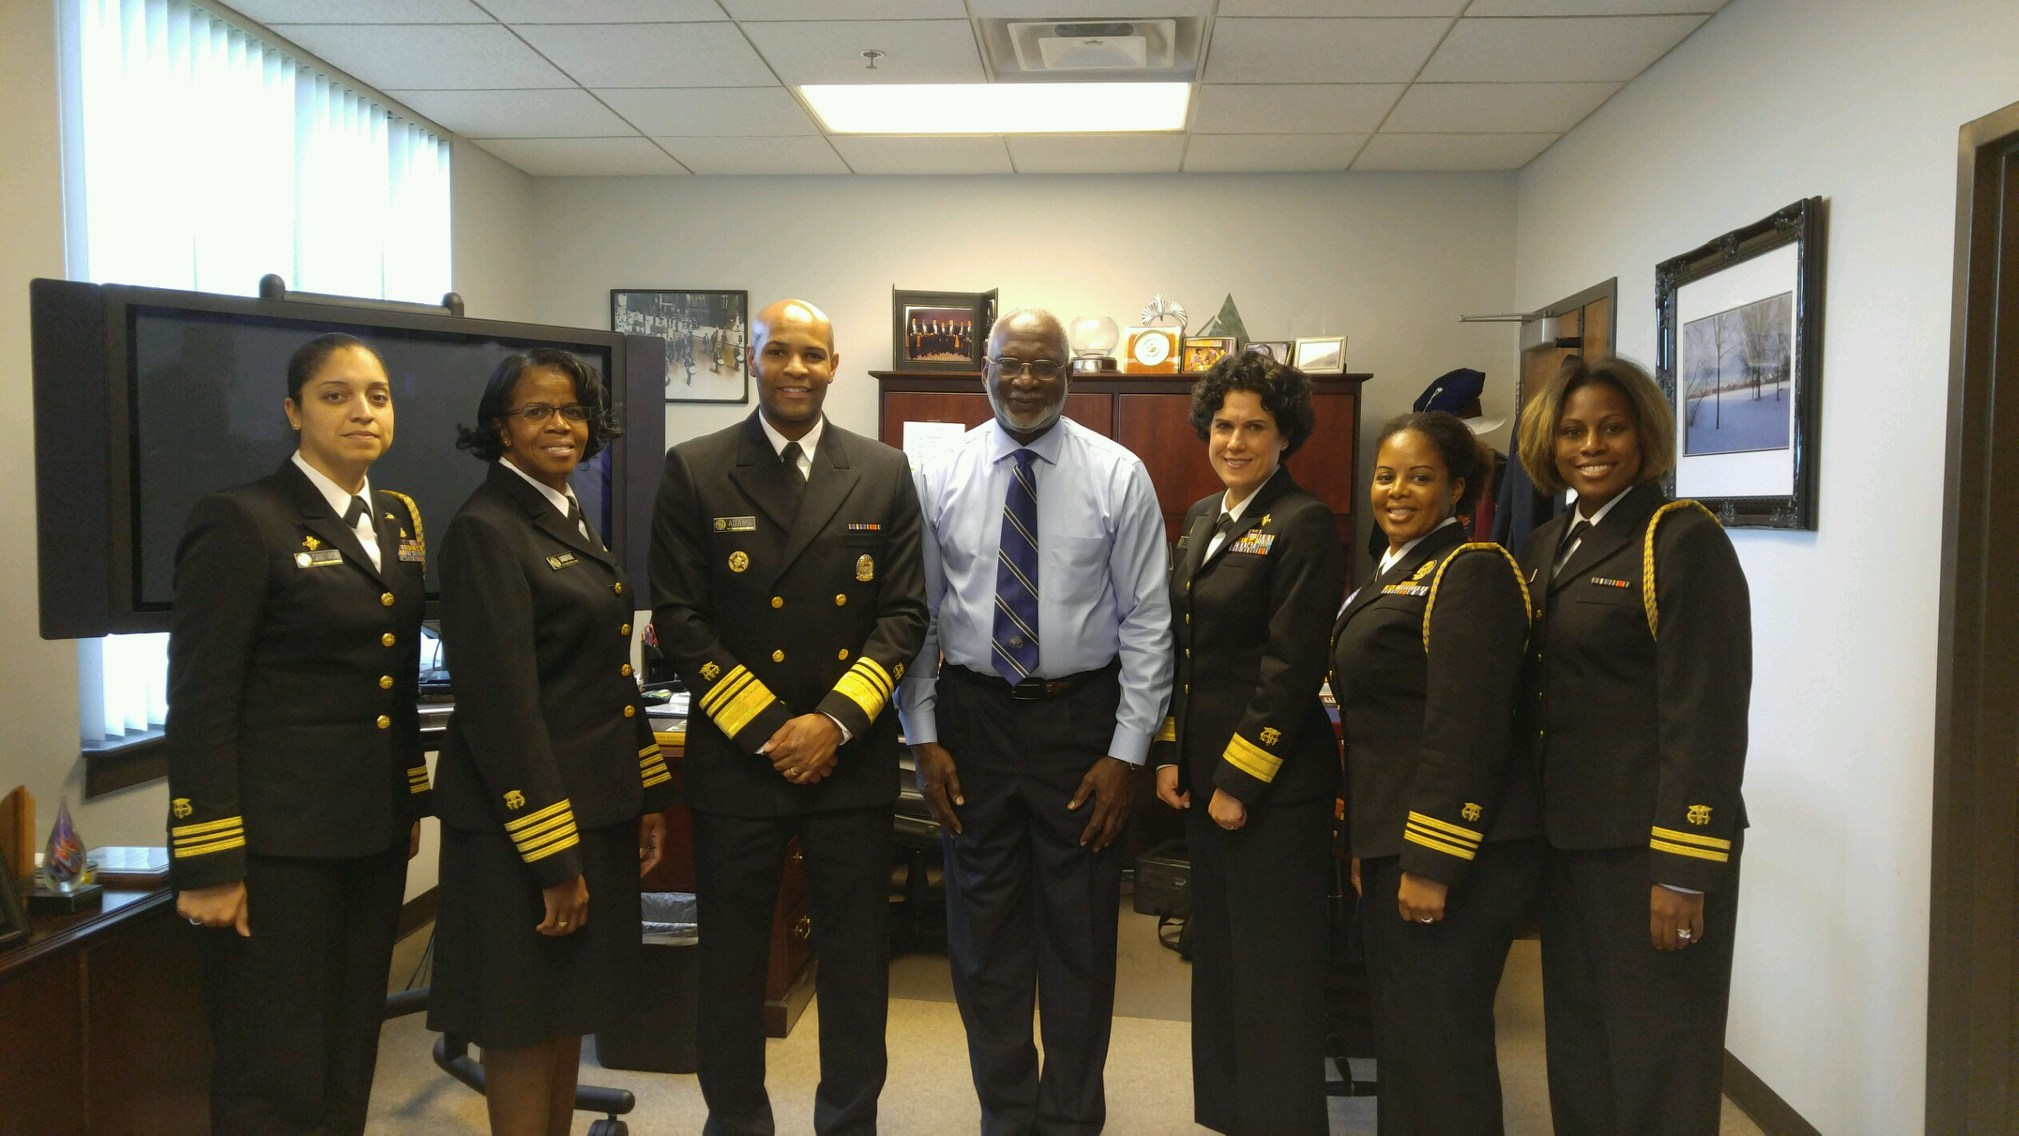 U.S. Surgeon General Adams Holds Fireside Chat with MSM Students and Faculty